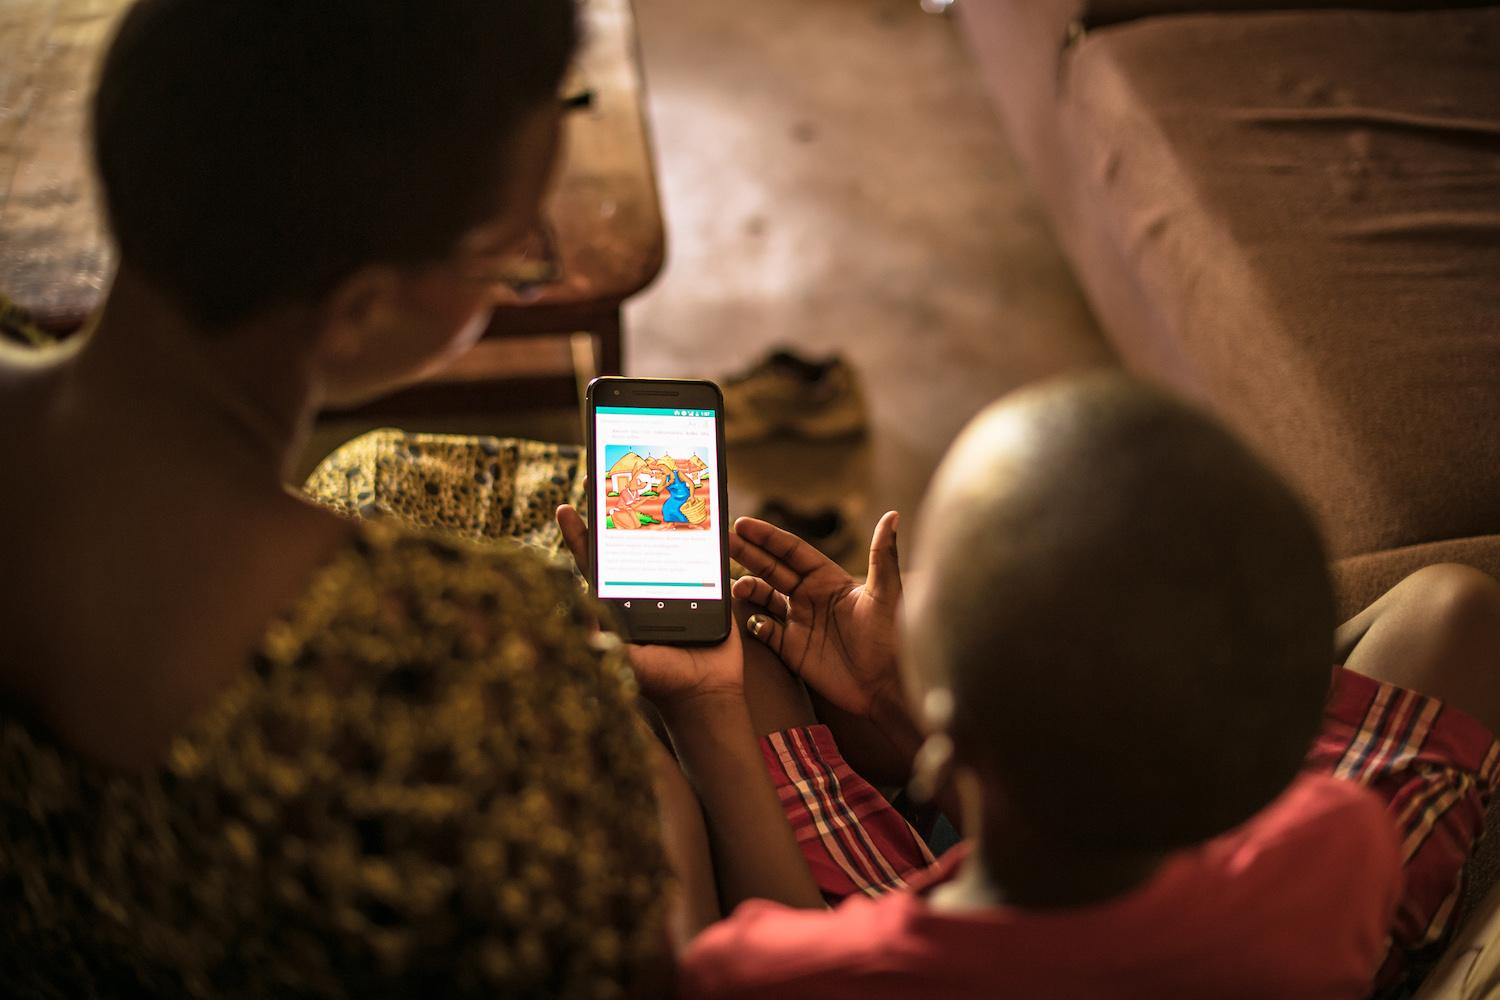 NABU - Kids Reading - App for Books in Mother Tongue Languages